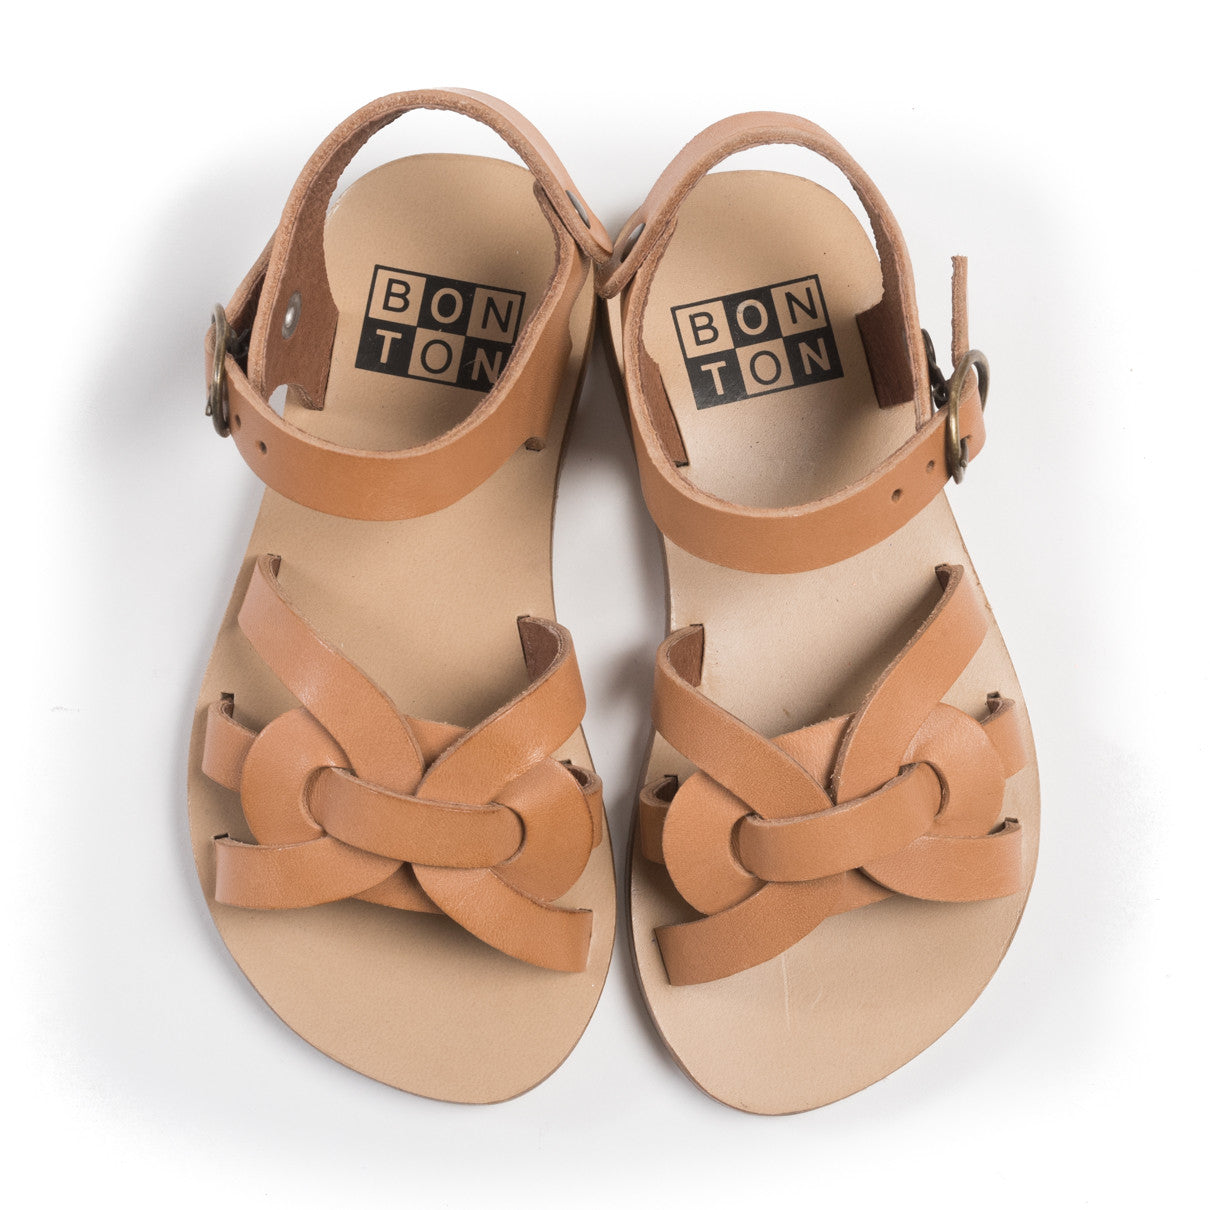 Leather Sandals Bonton cI8xUwYxlk